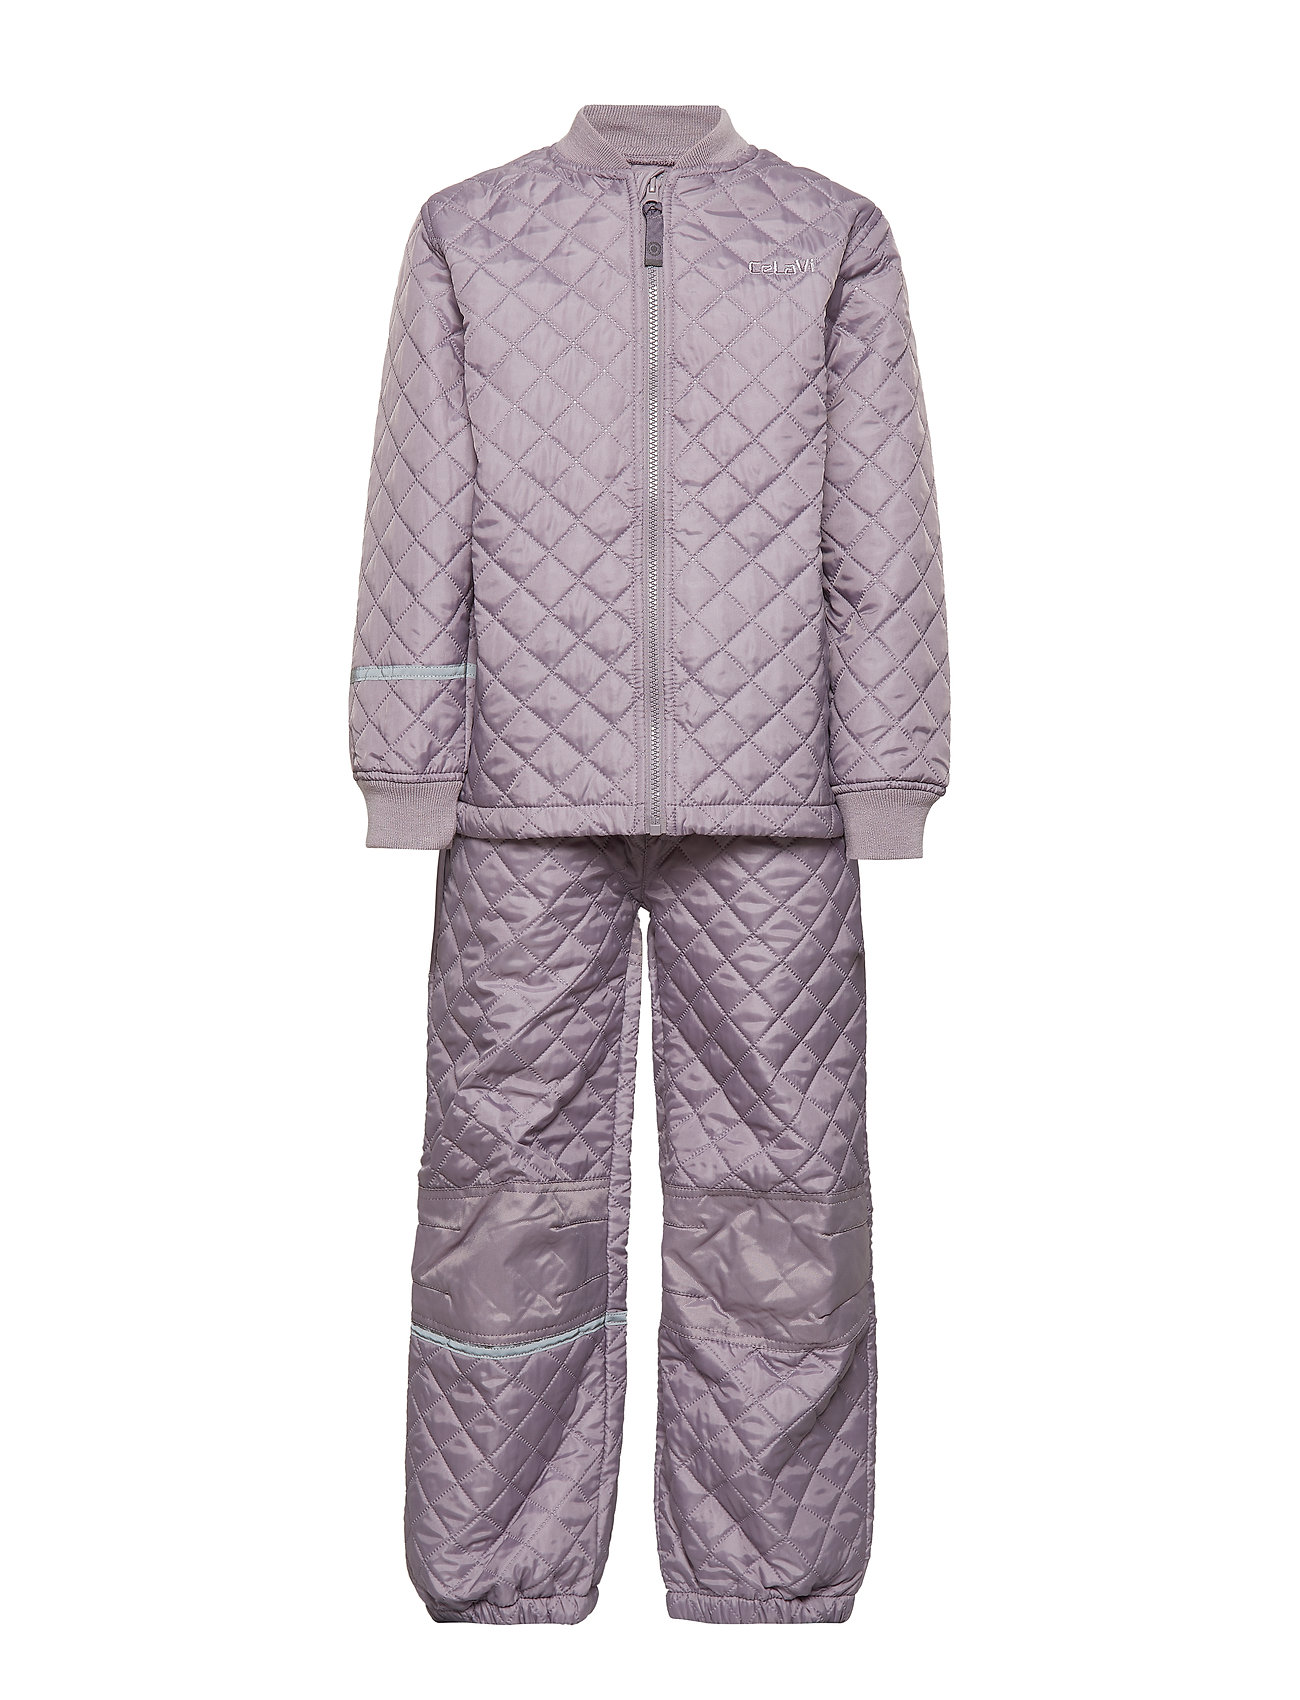 Image of Thermal Set -Solid Outerwear Thermo Outerwear Lilla CeLaVi (2959689141)